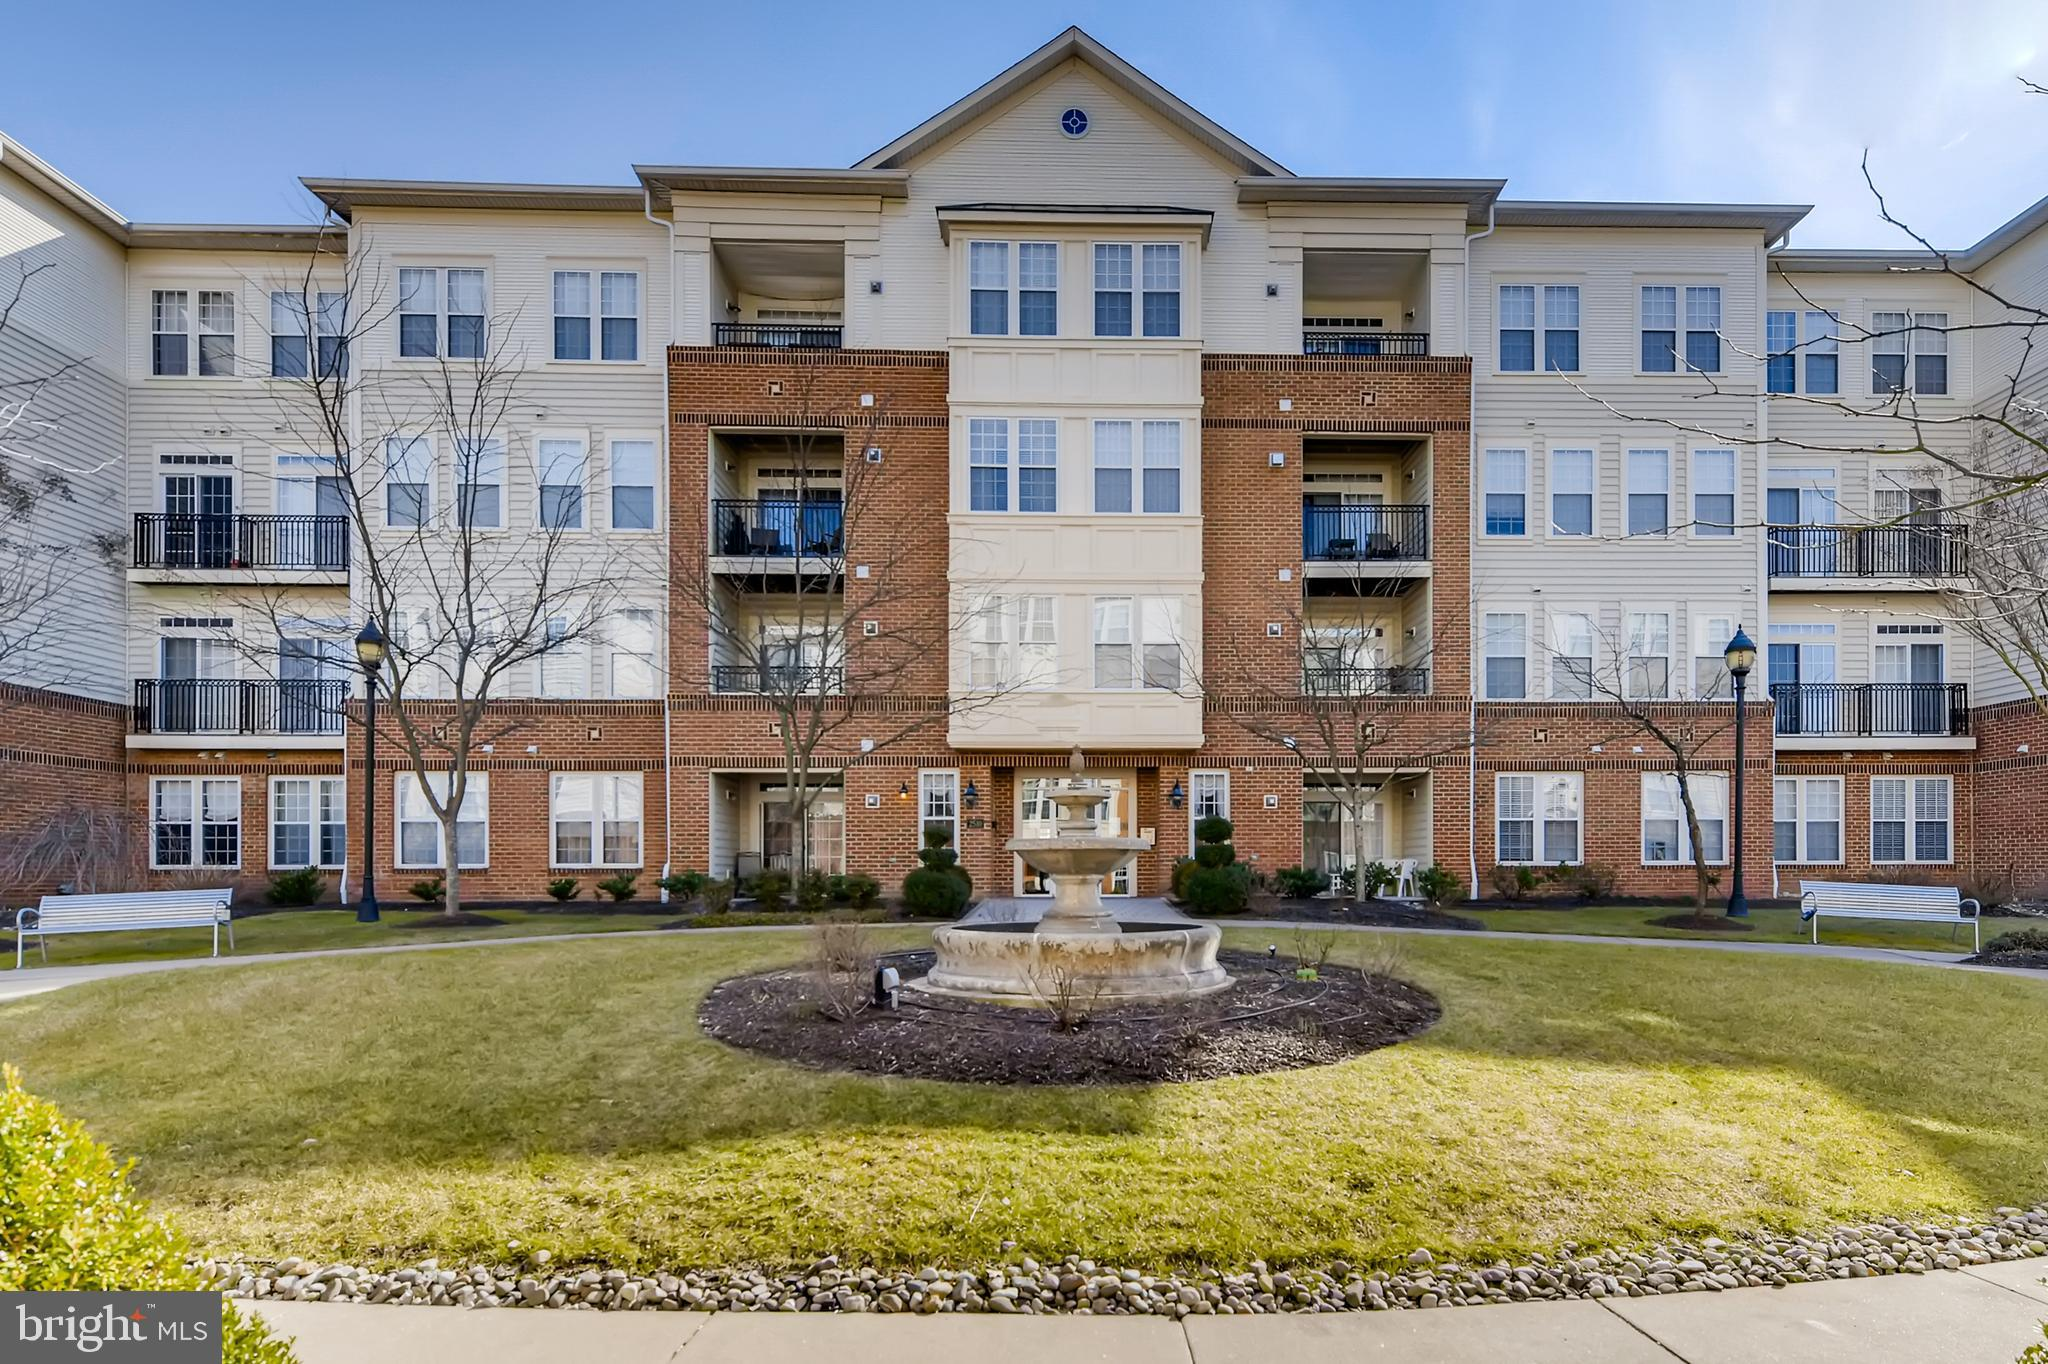 Now Active! Welcome to this gorgeous, sun-filled unit in the active adult community of Ellicott Hills. With soaring nine-foot ceilings throughout, this spacious two bedroom, two bath condo has it all. Includes an electric fireplace, sunroom, eat-in kitchen, separate dining room, and laundry room with storage space. The guest bedroom features built in shelves, a huge closet, and a delightful Juliet balcony. Recently remodeled guest bathroom boasts stylish vinyl plank flooring. The generously-sized primary bedroom includes two huge closets, an ensuite bath with an extra long vanity with seating area, stand alone shower, and tile flooring. Relax in the sunny kitchen with granite countertops and walls of windows. The unit also includes a 7' X 5' deeded storage unit on the first floor of the building. Community features a clubhouse, outdoor pool and fitness center. Freshly painted with new carpeting, the space is ready for you to call it yours. Welcome Home!